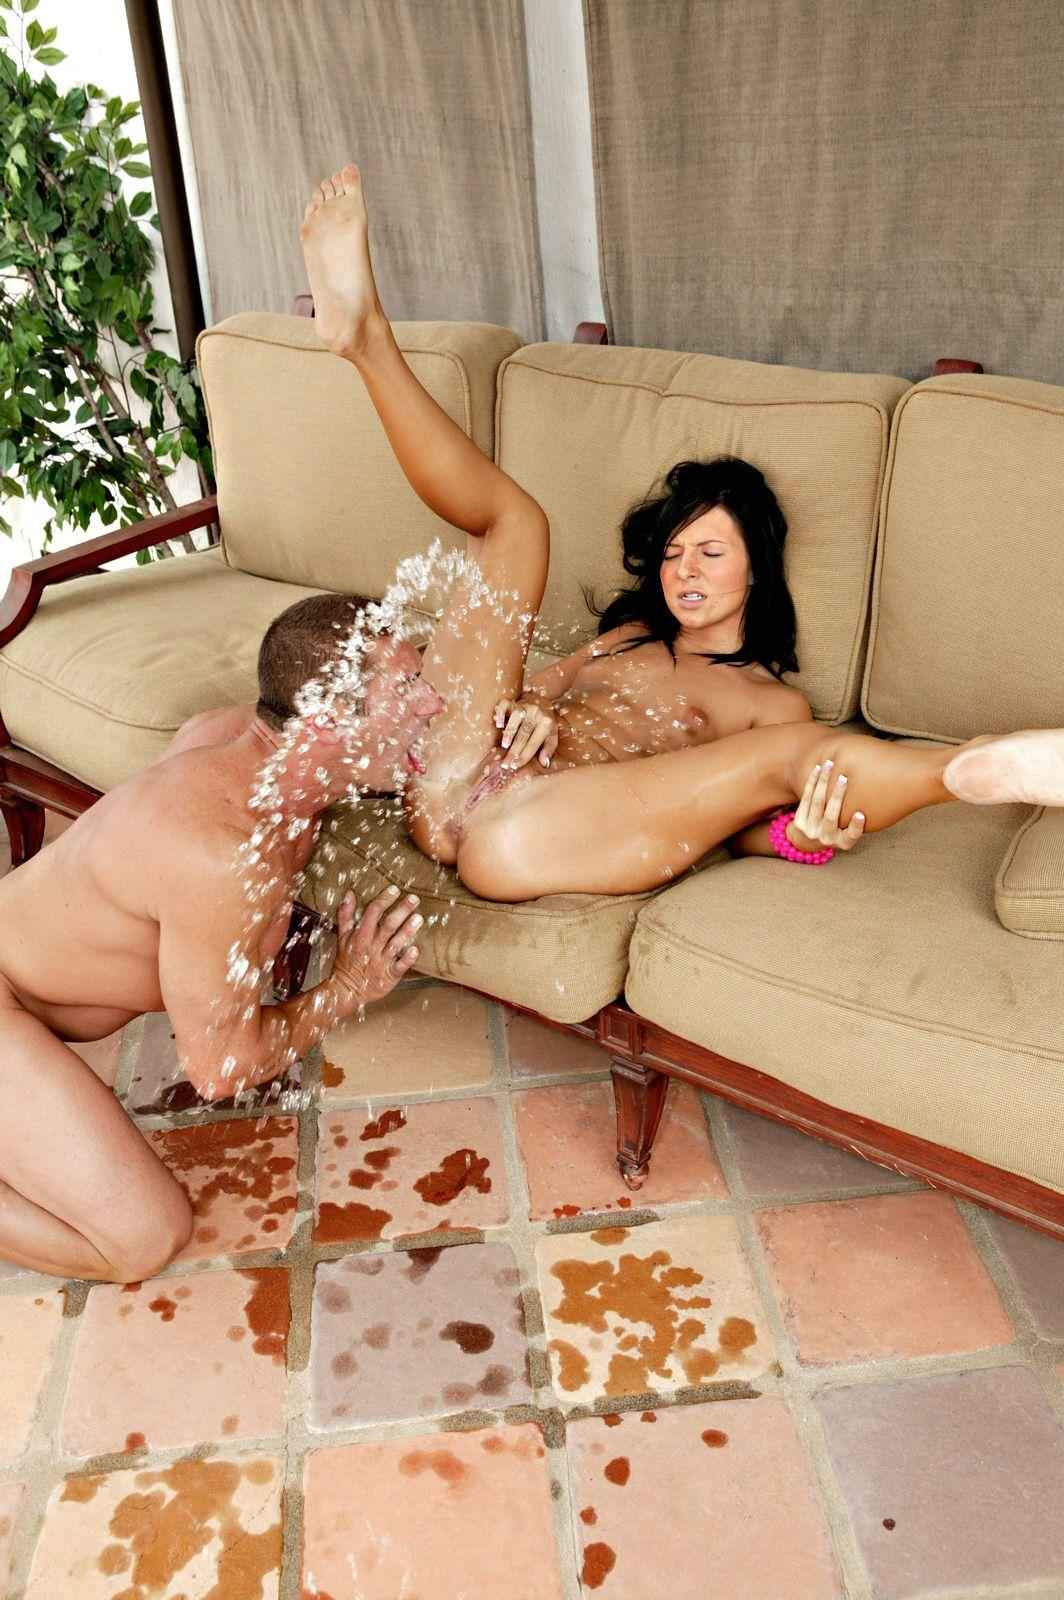 Not girl fully naked squirting opinion obvious